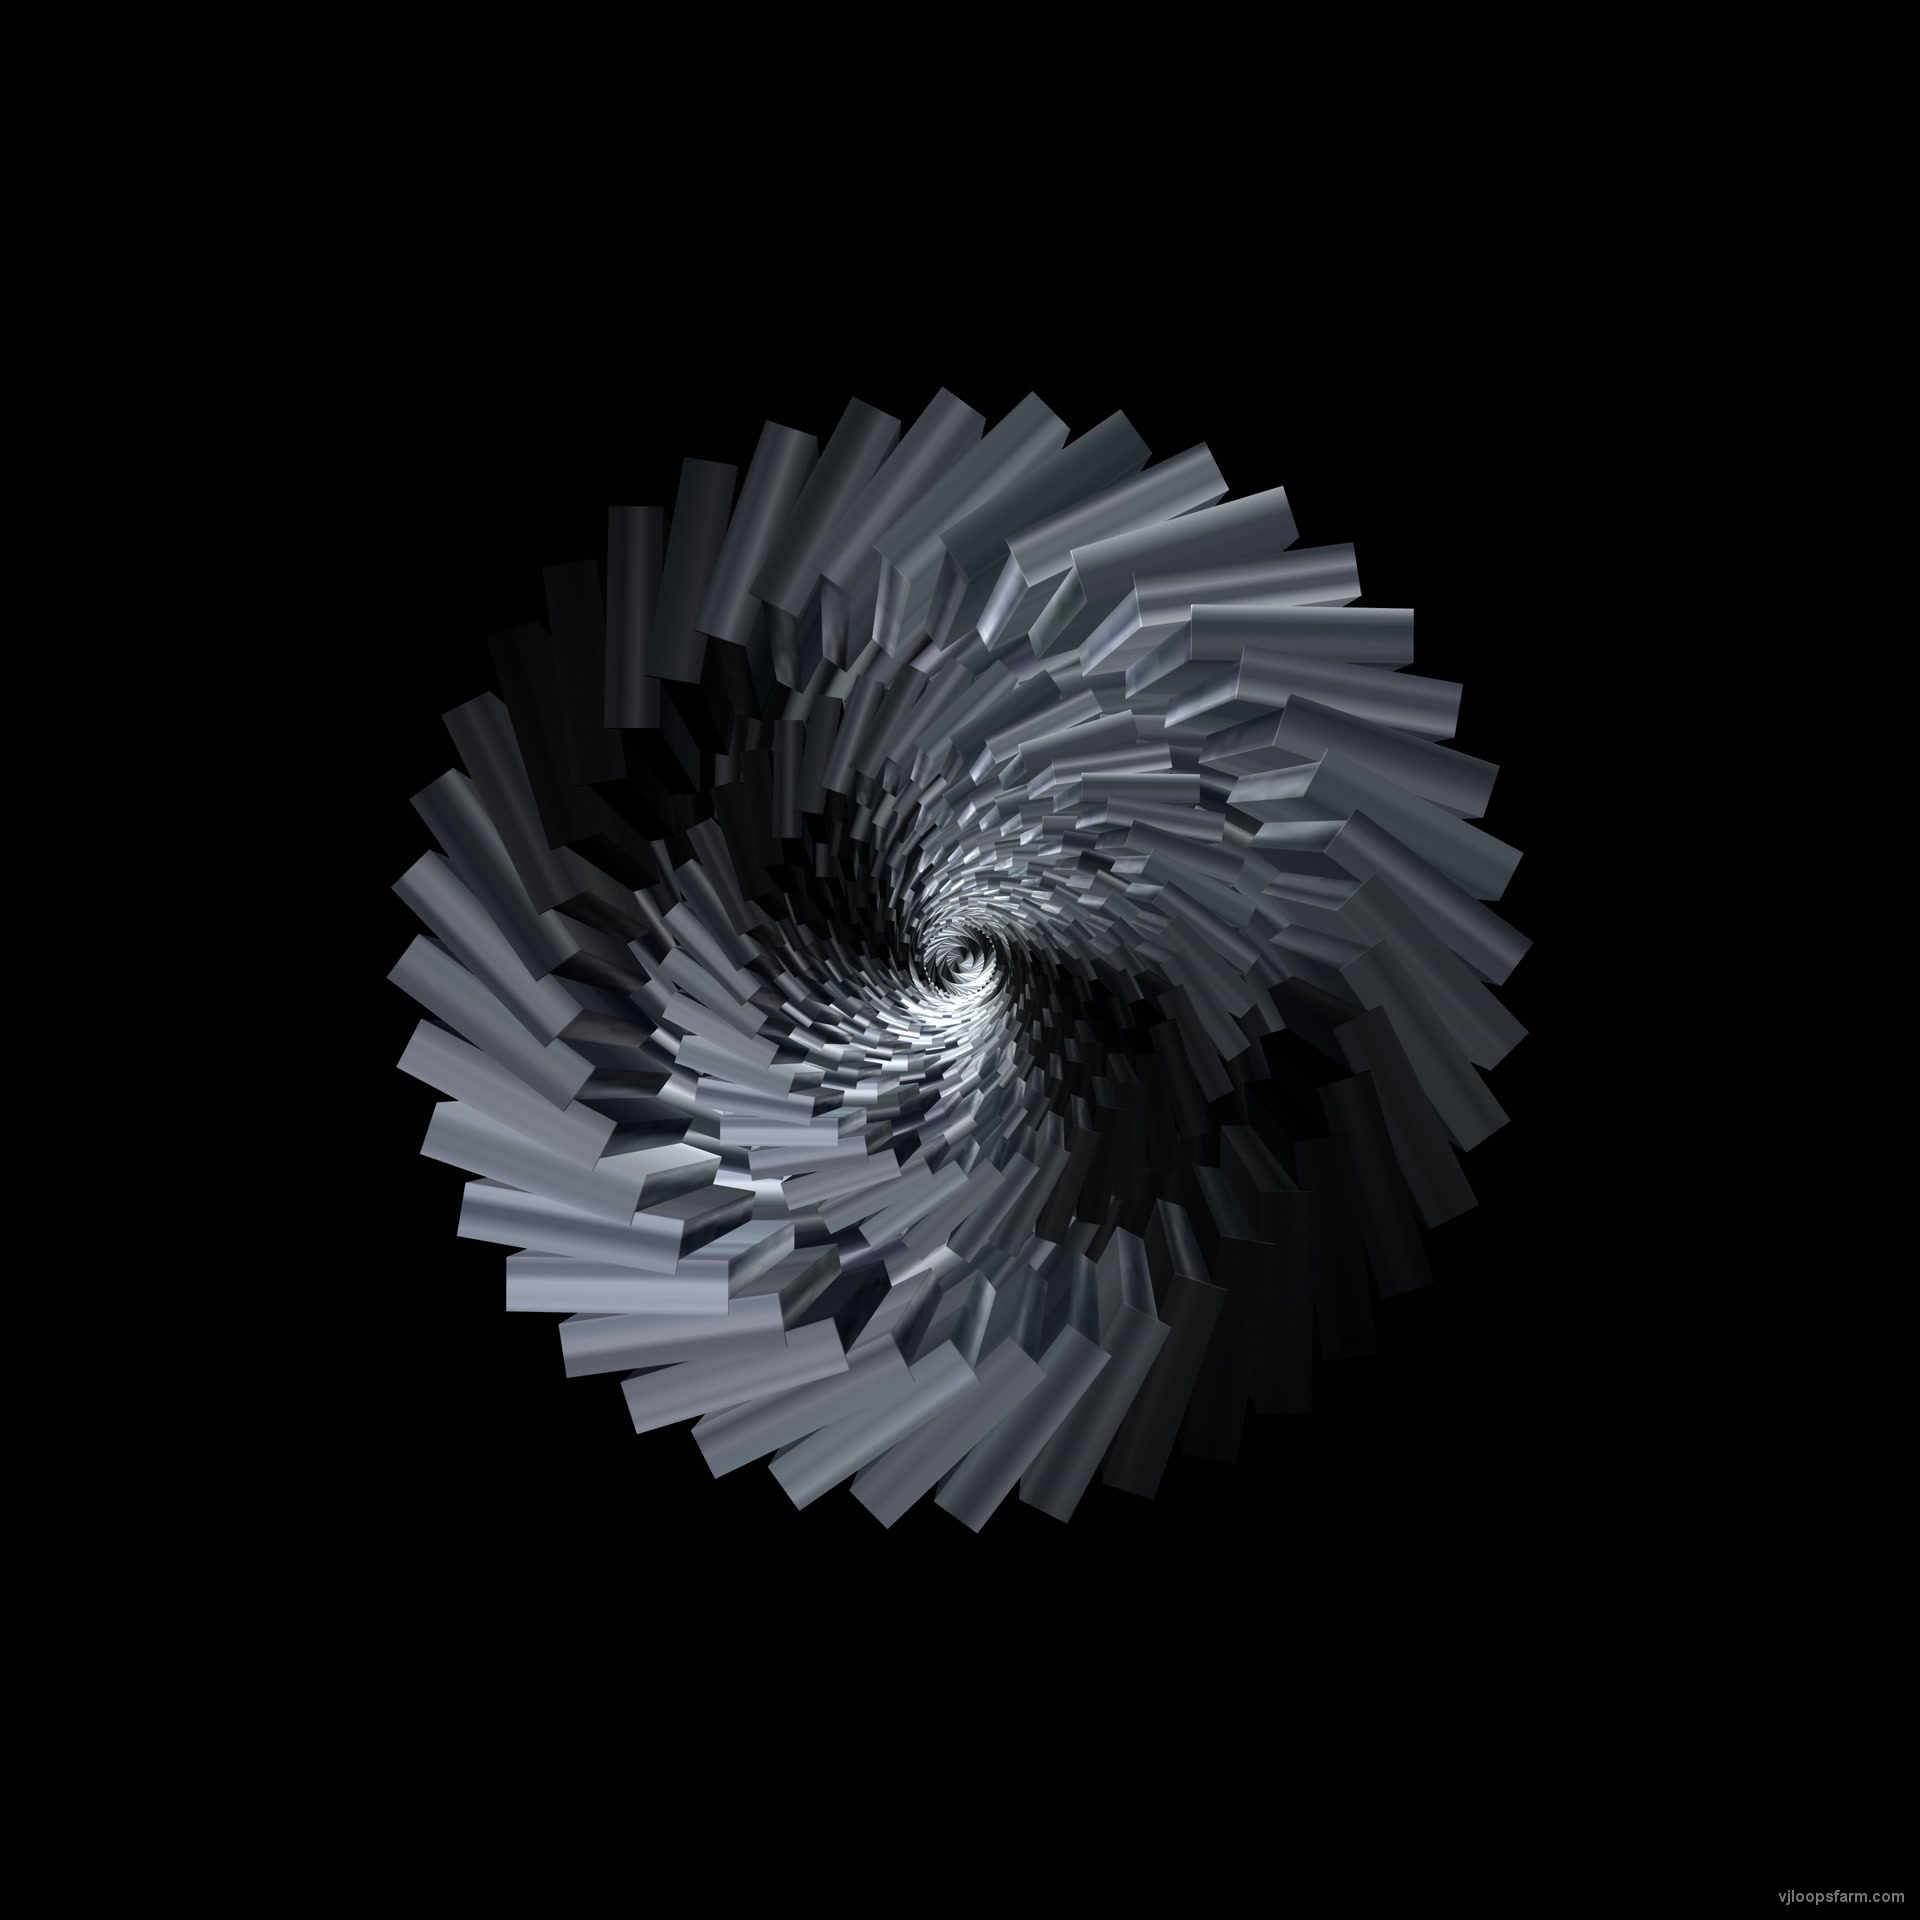 Rotating Silver Chrome Tunnel by VJkET 4K Fulldome VJ Loop